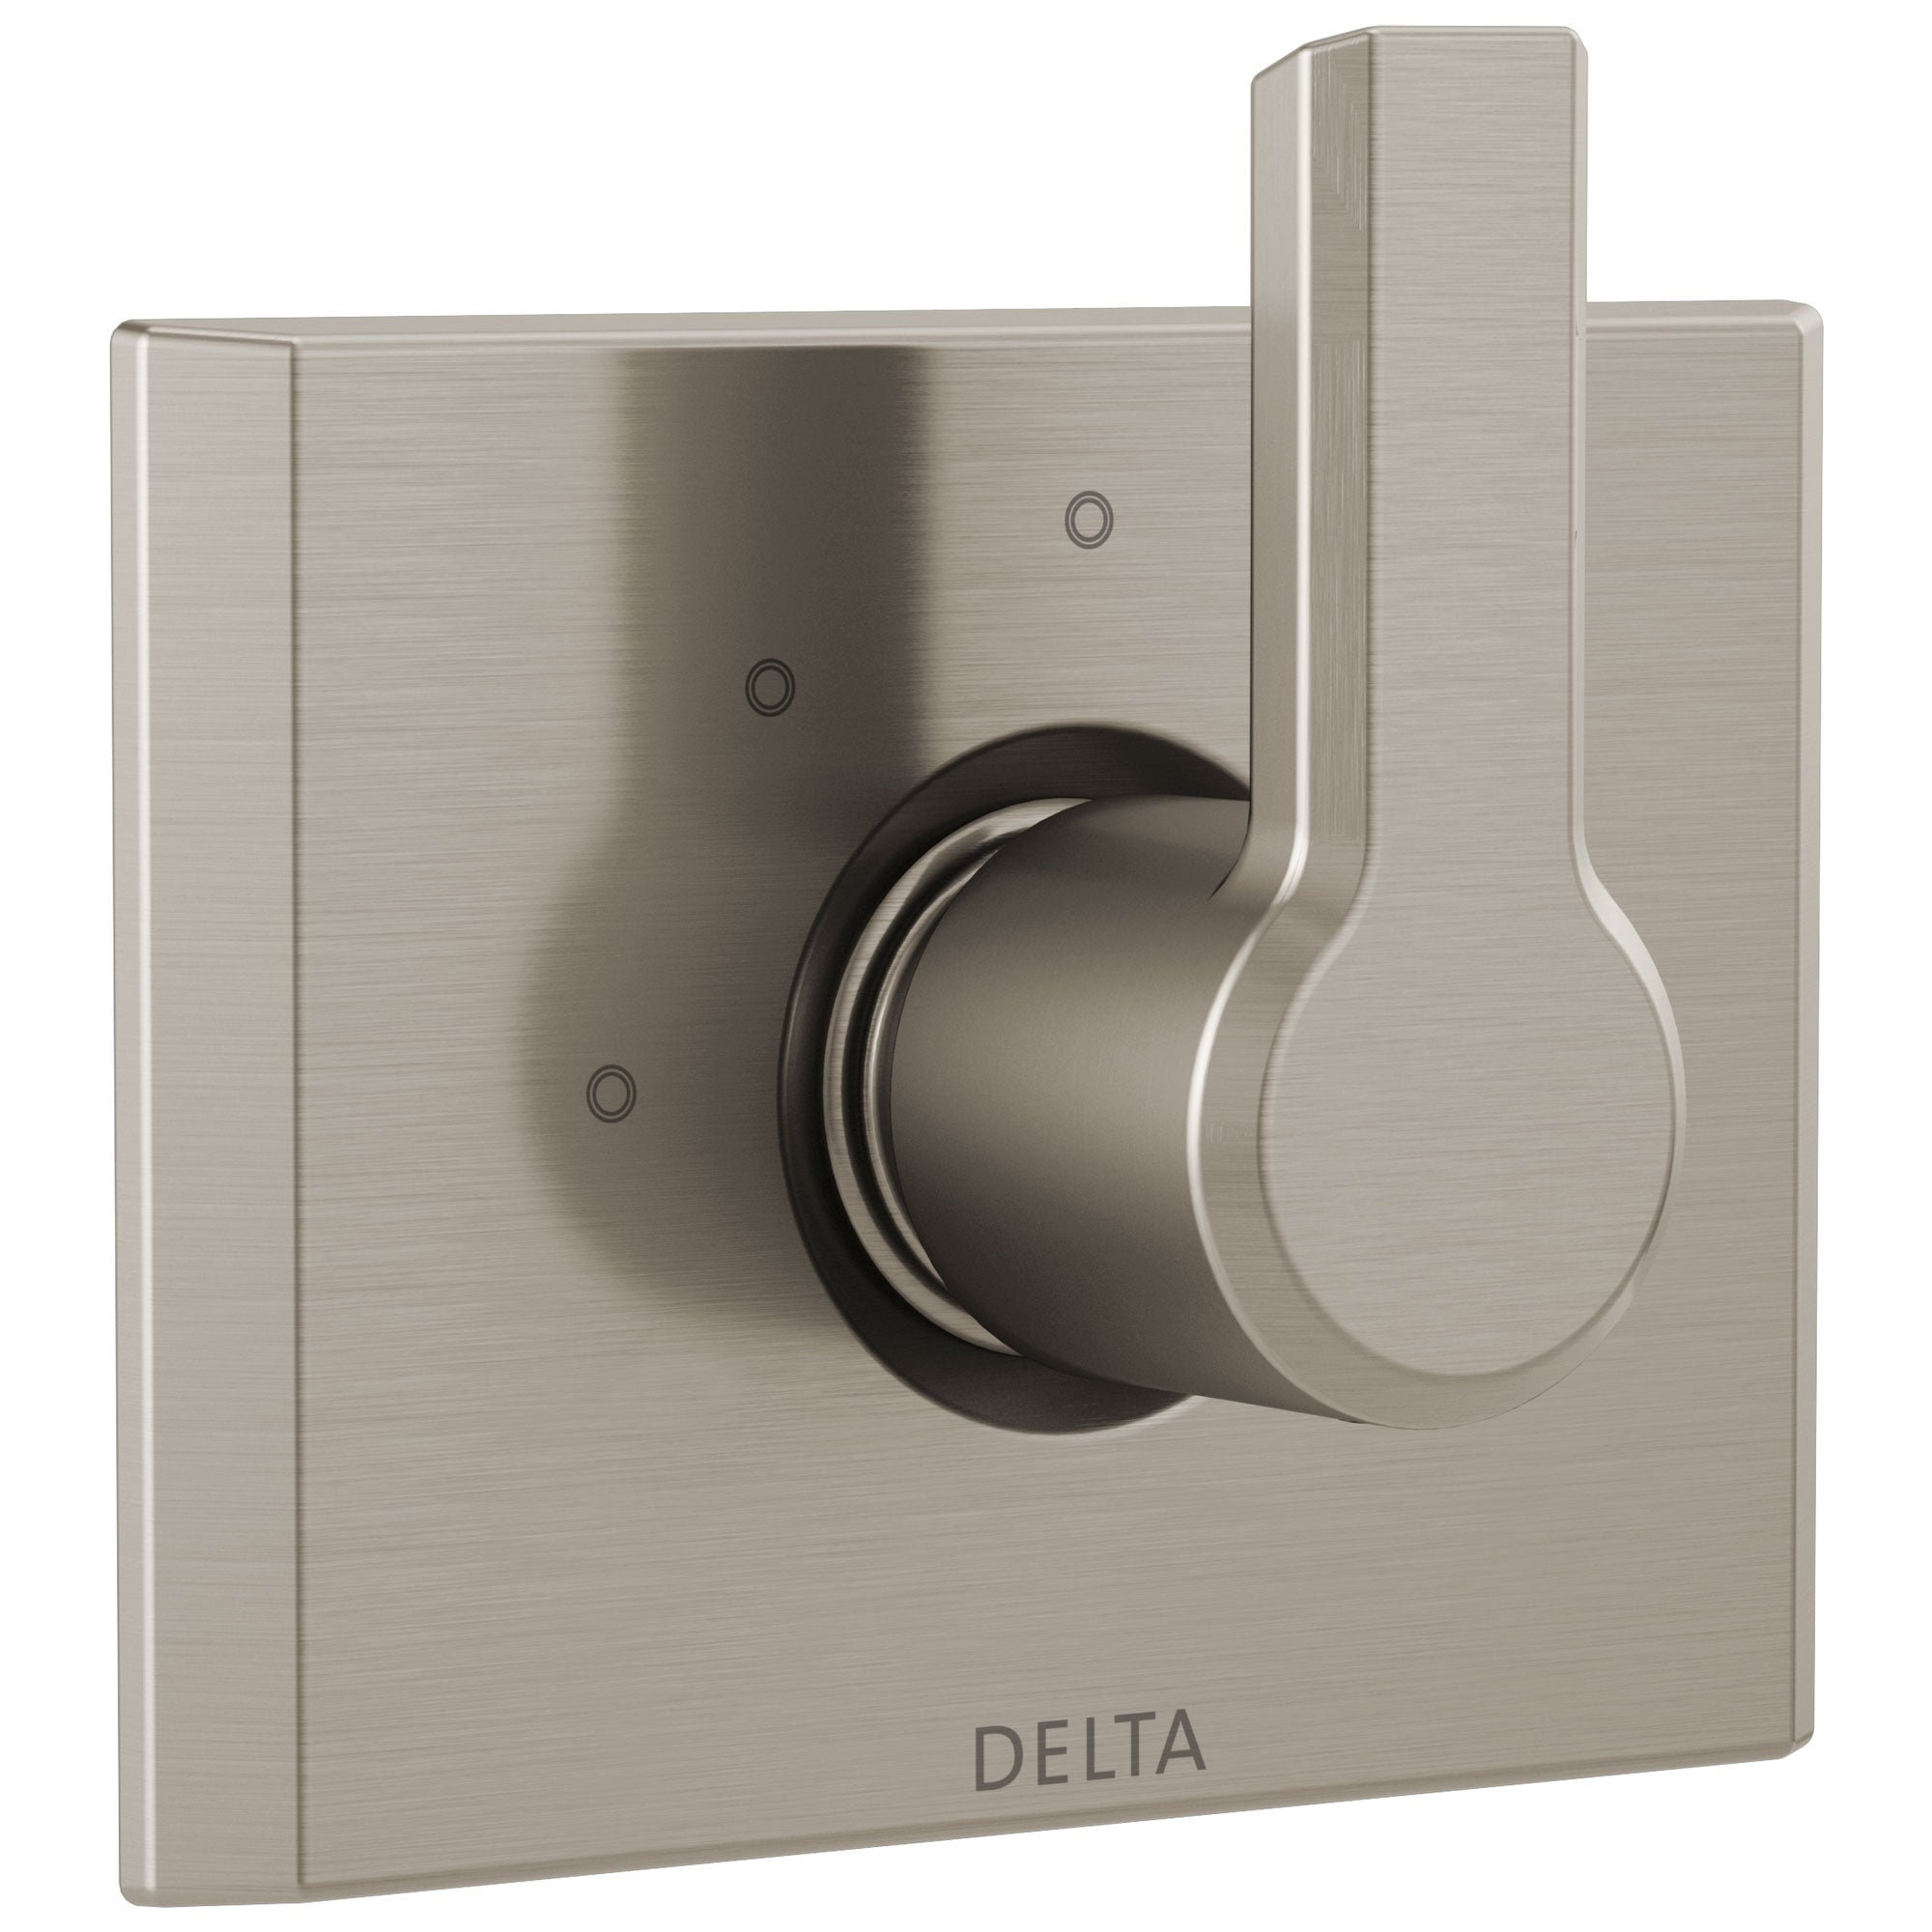 Delta Pivotal Modern Stainless Steel Finish 3-Setting 2 Outlet Port Shower System Diverter Includes Lever Handle and Rough-in Valve D3570V